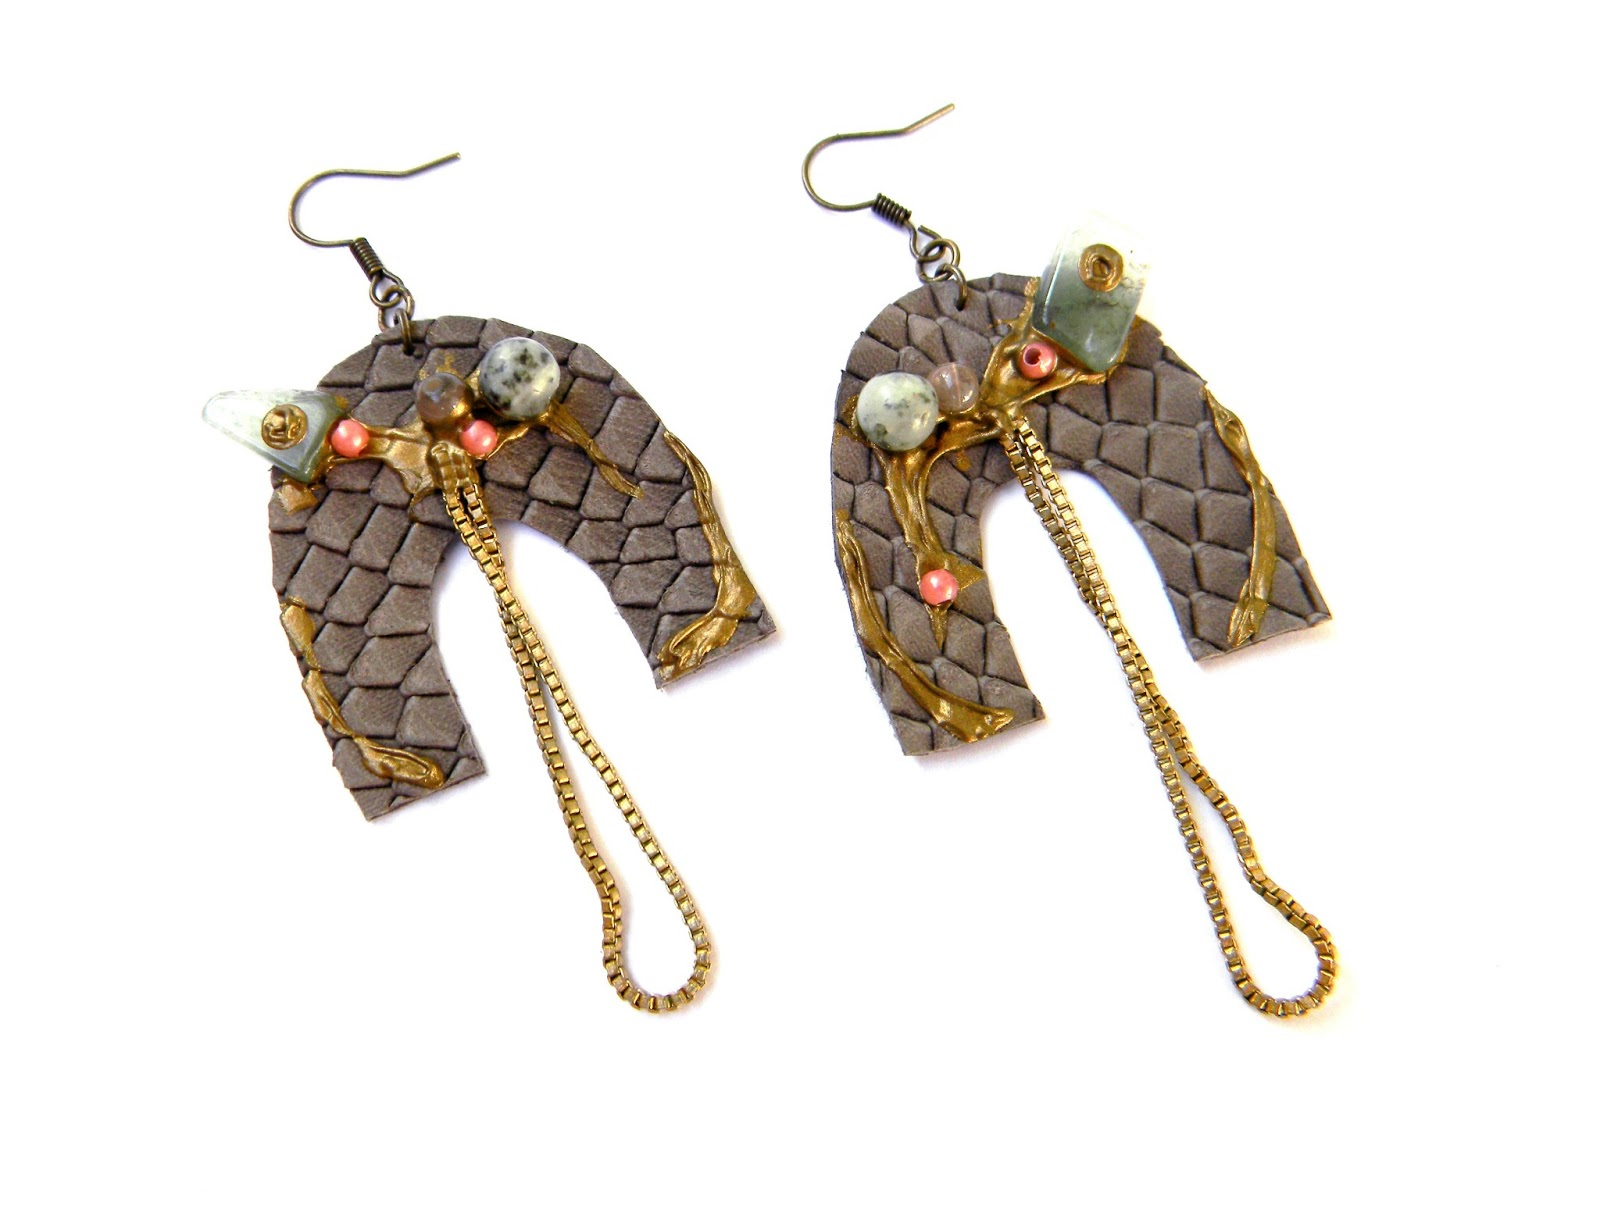 Uniuqe Handmade Earrings Handcrafted Jewelry Fashion Jewelry Steampunk Earrings